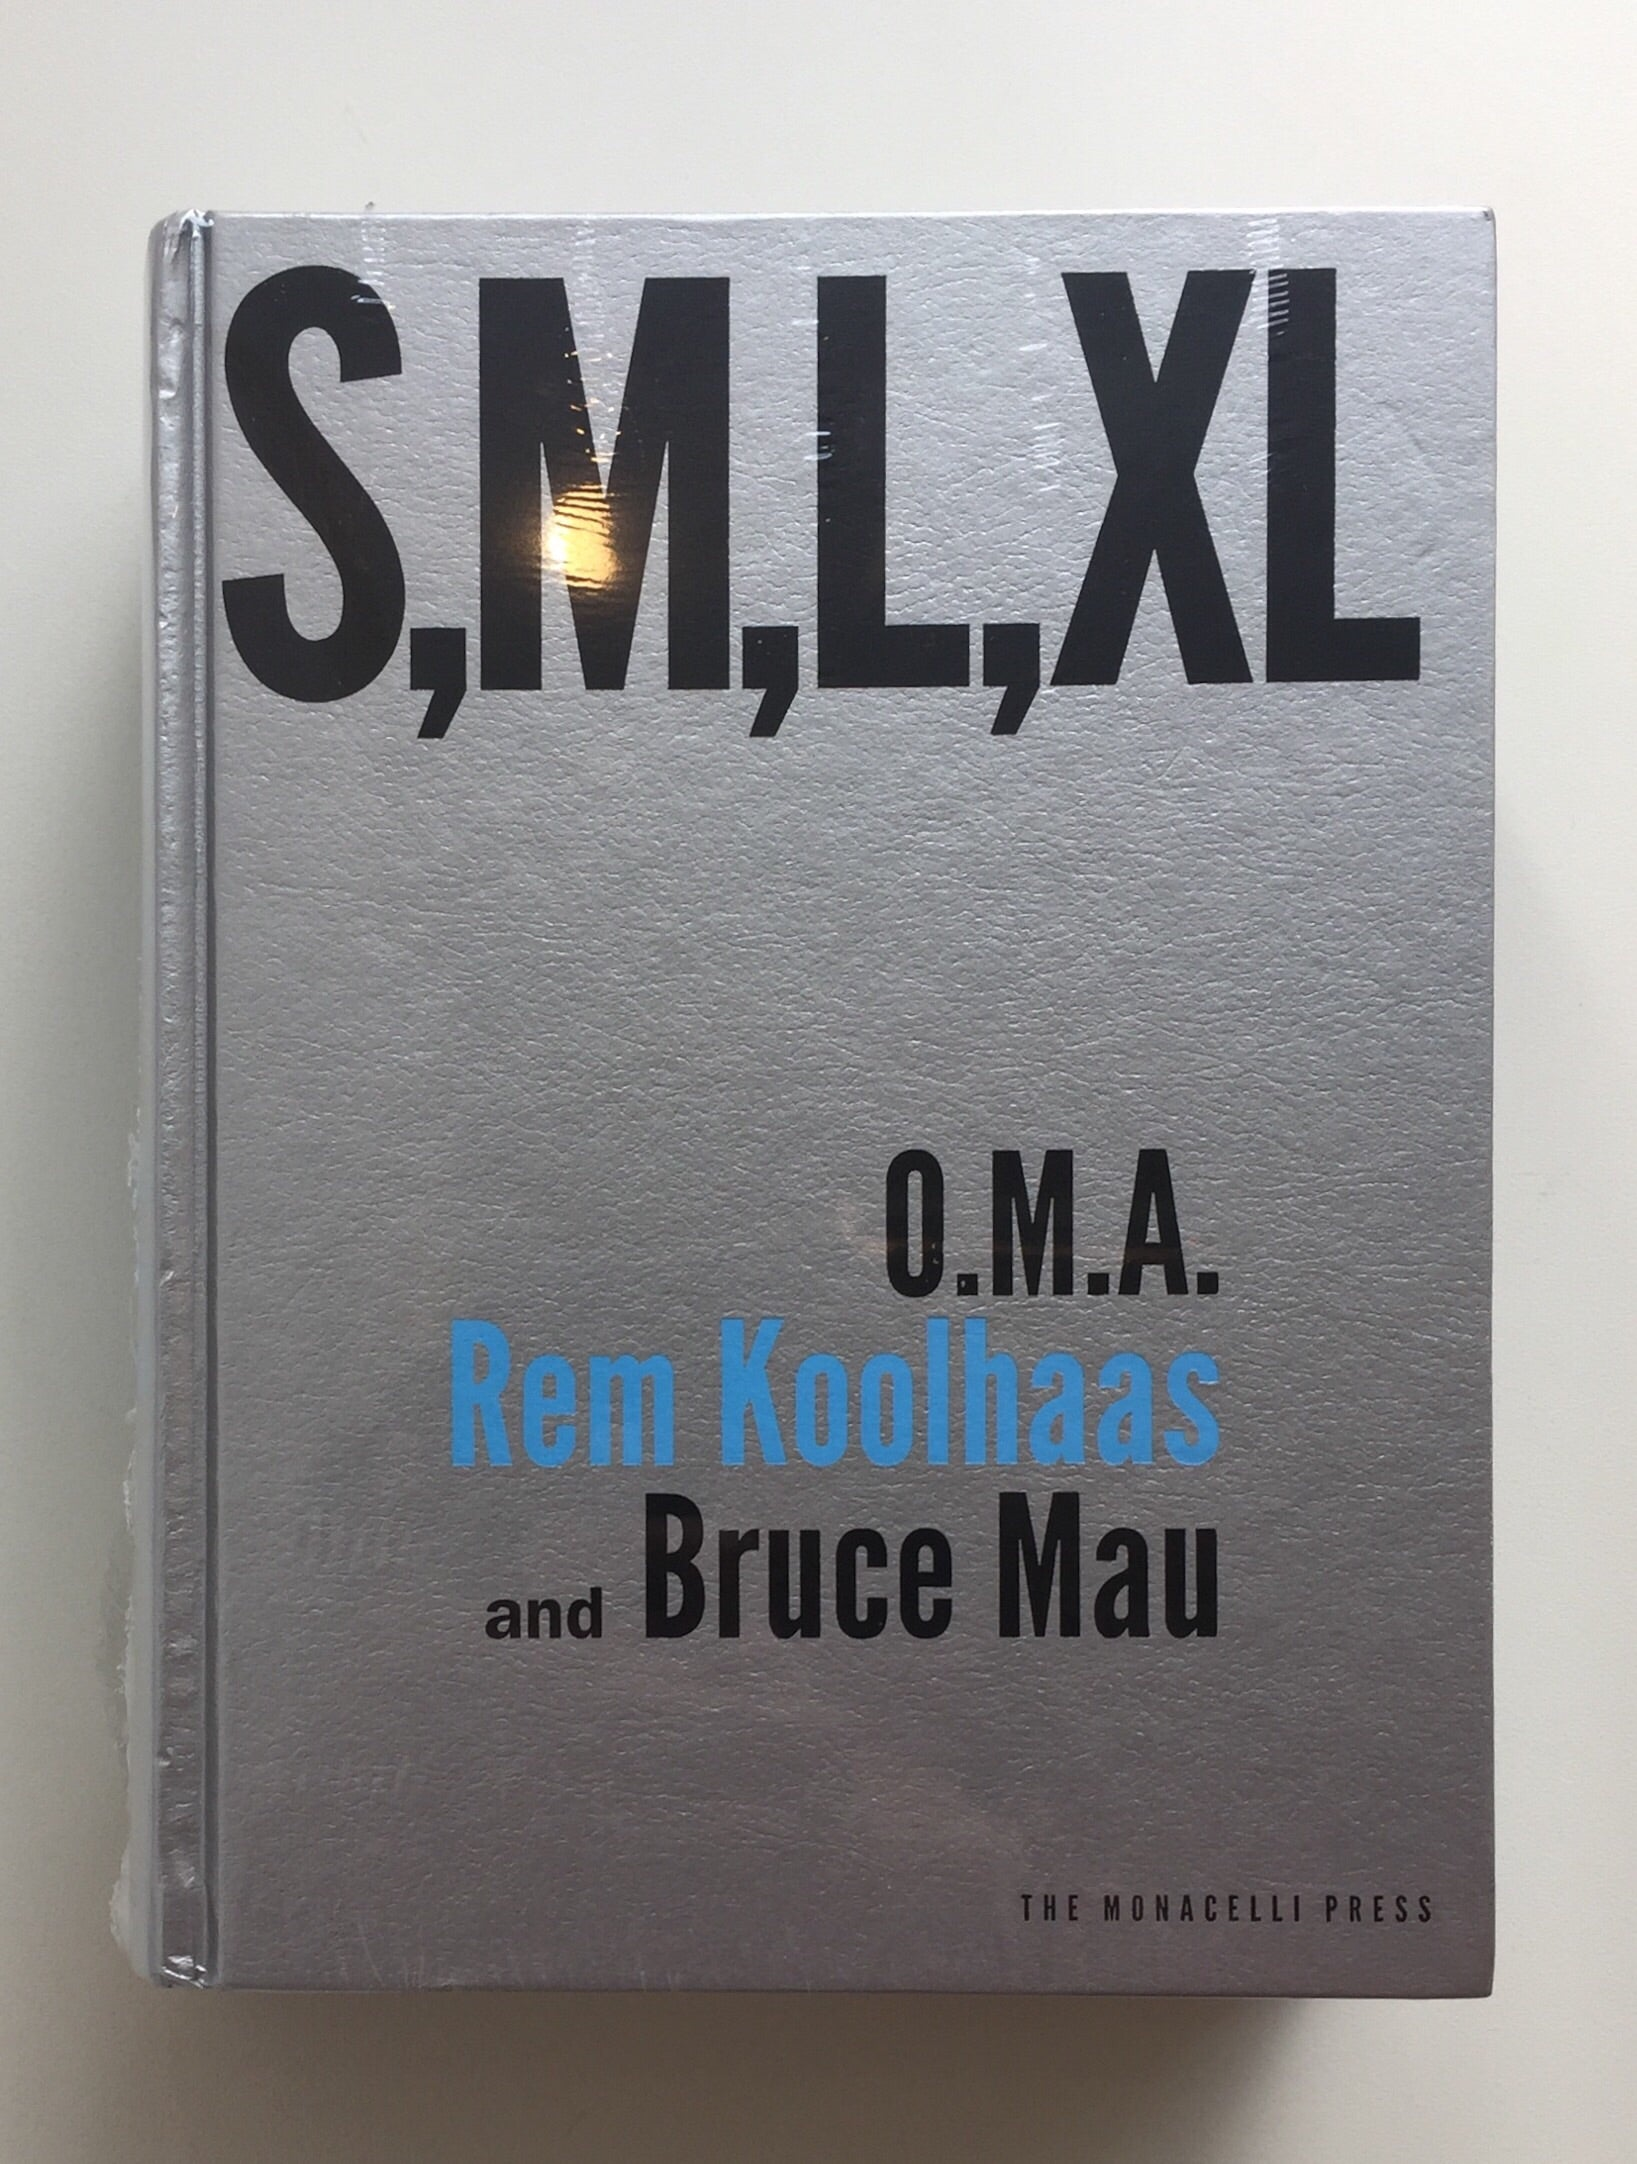 S,M,L,XL by Rem Koolhaas and Bruce Mau